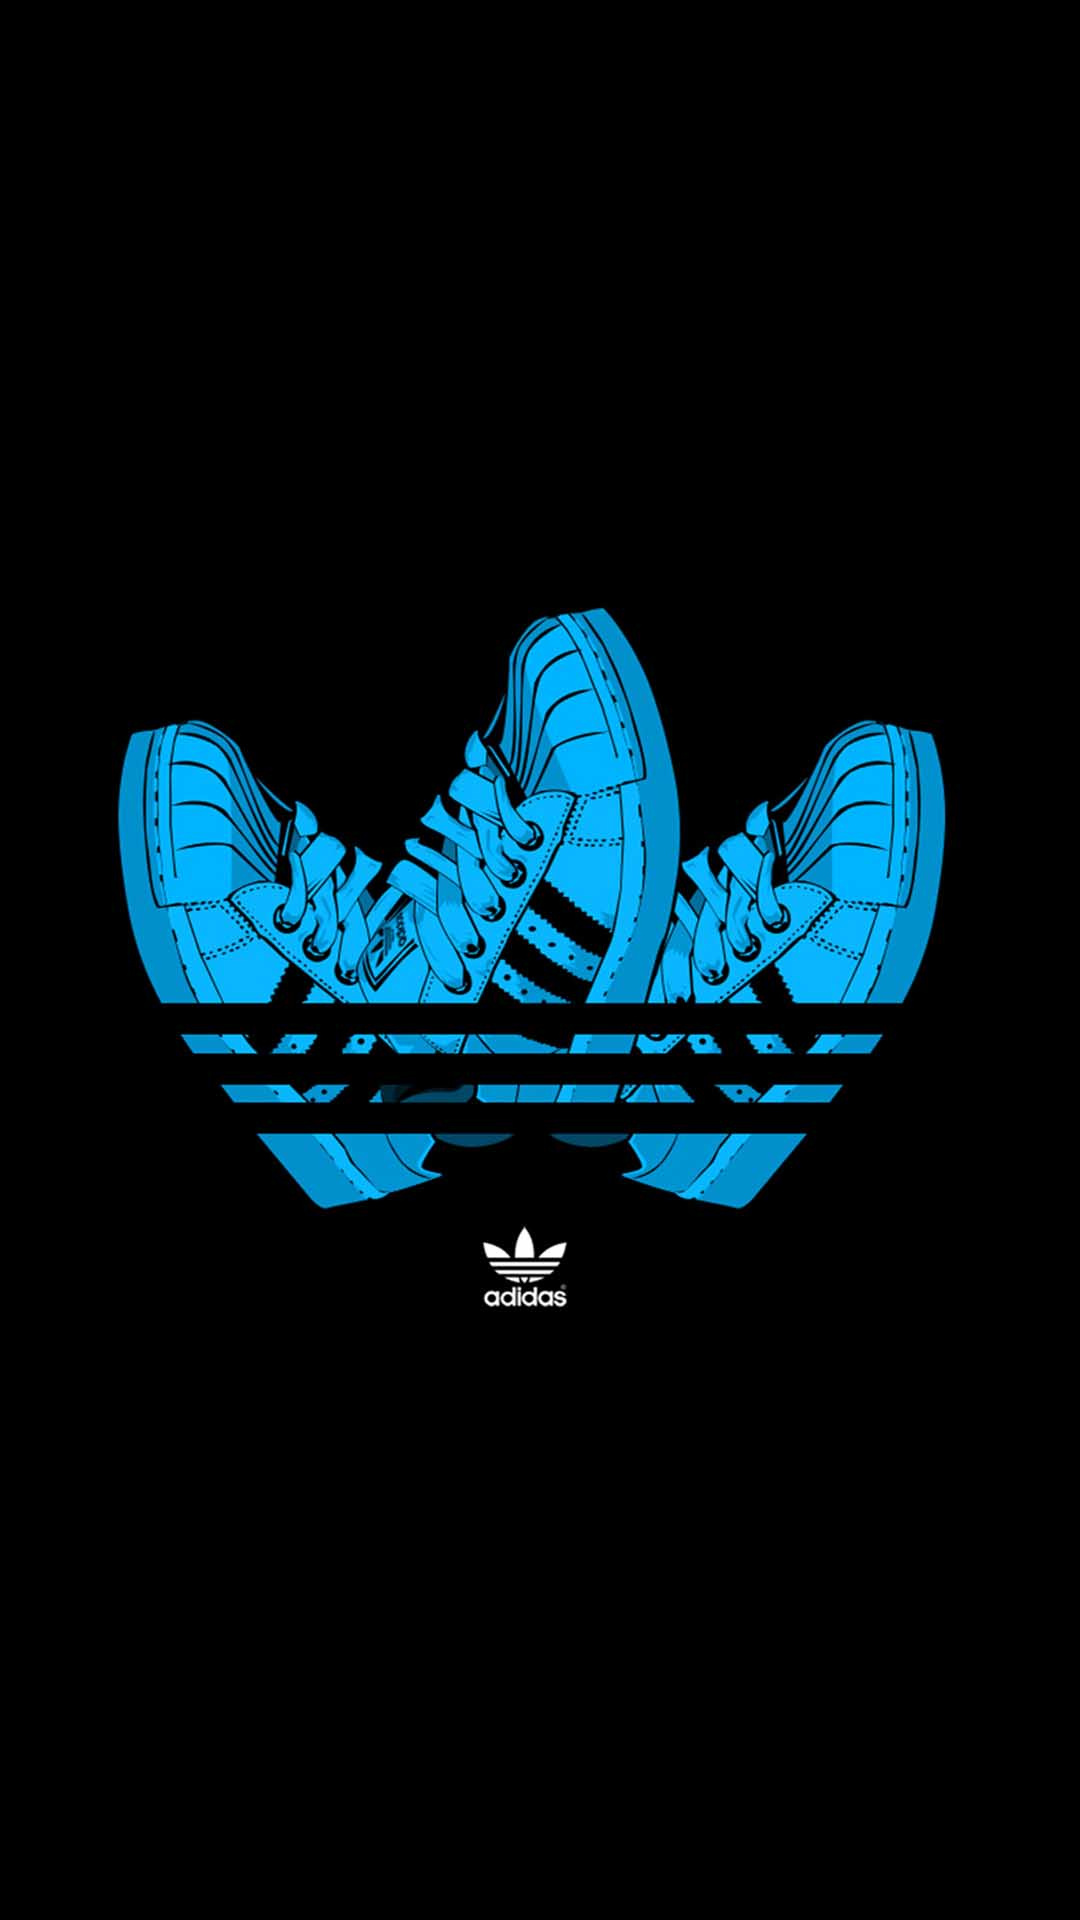 iPhone wallpaper adidas classic 3Wallpapers : notre sélection de fonds d'écran du 19/04/2018